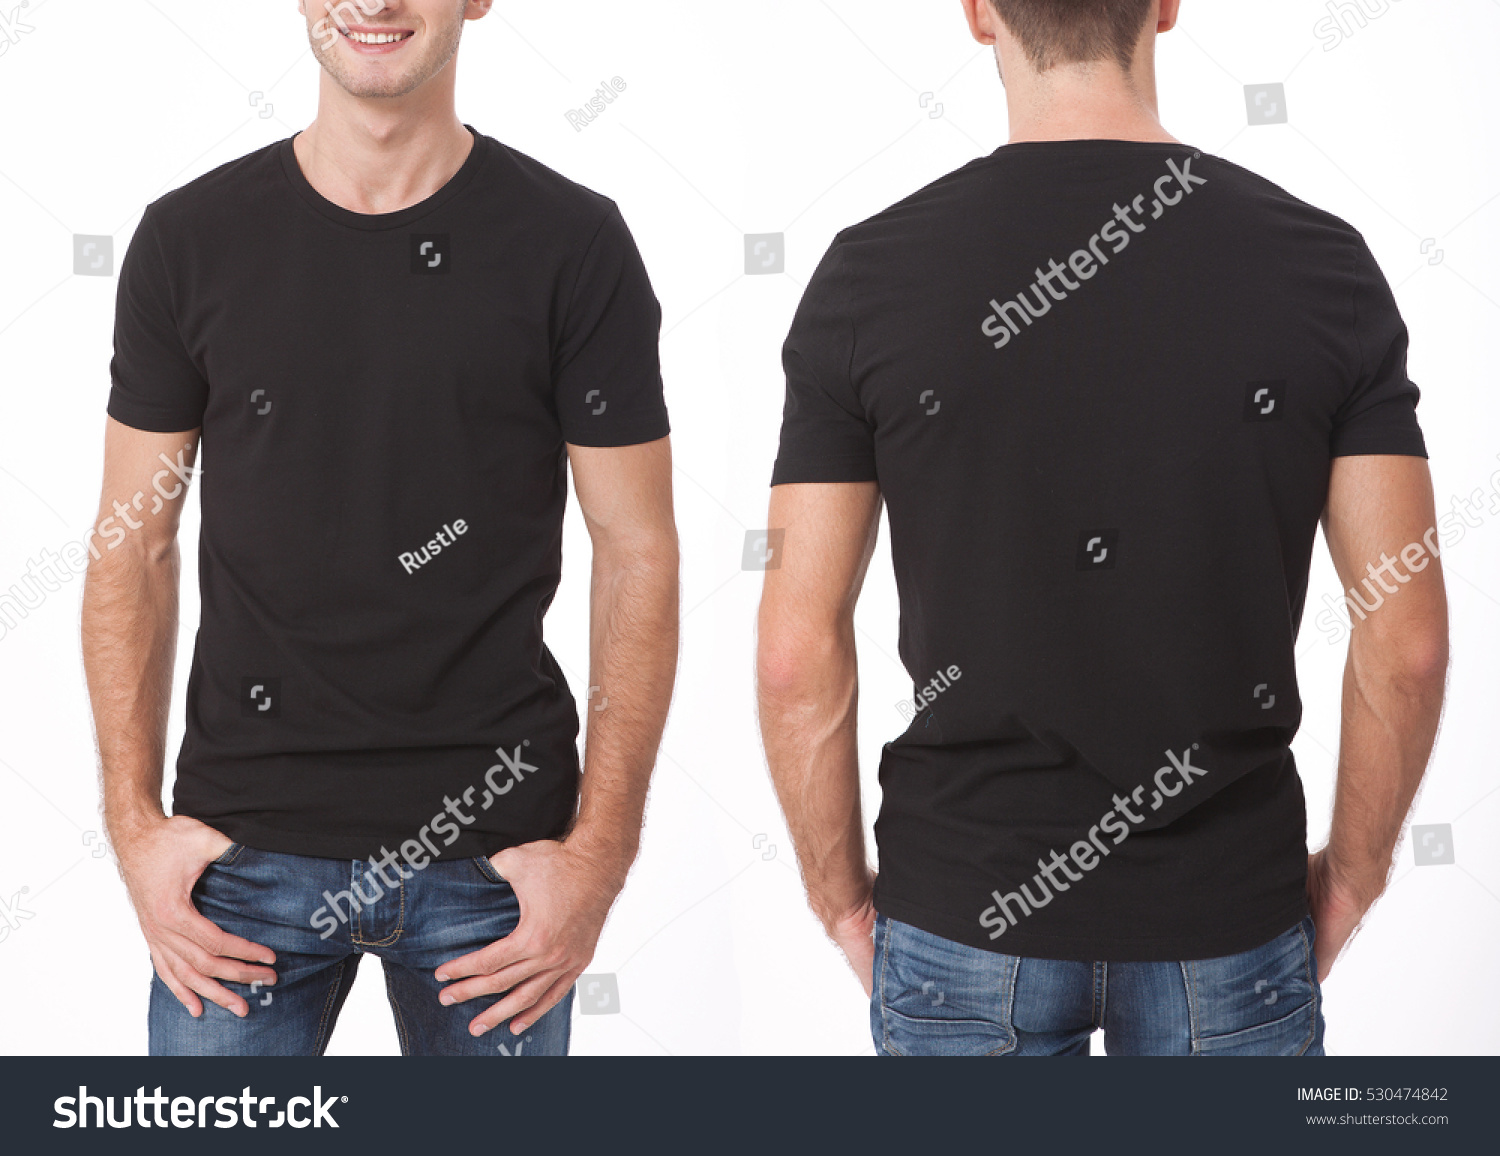 Black t shirt designs - T Shirt Design And People Concept Close Up Of Young Man In Blank Black